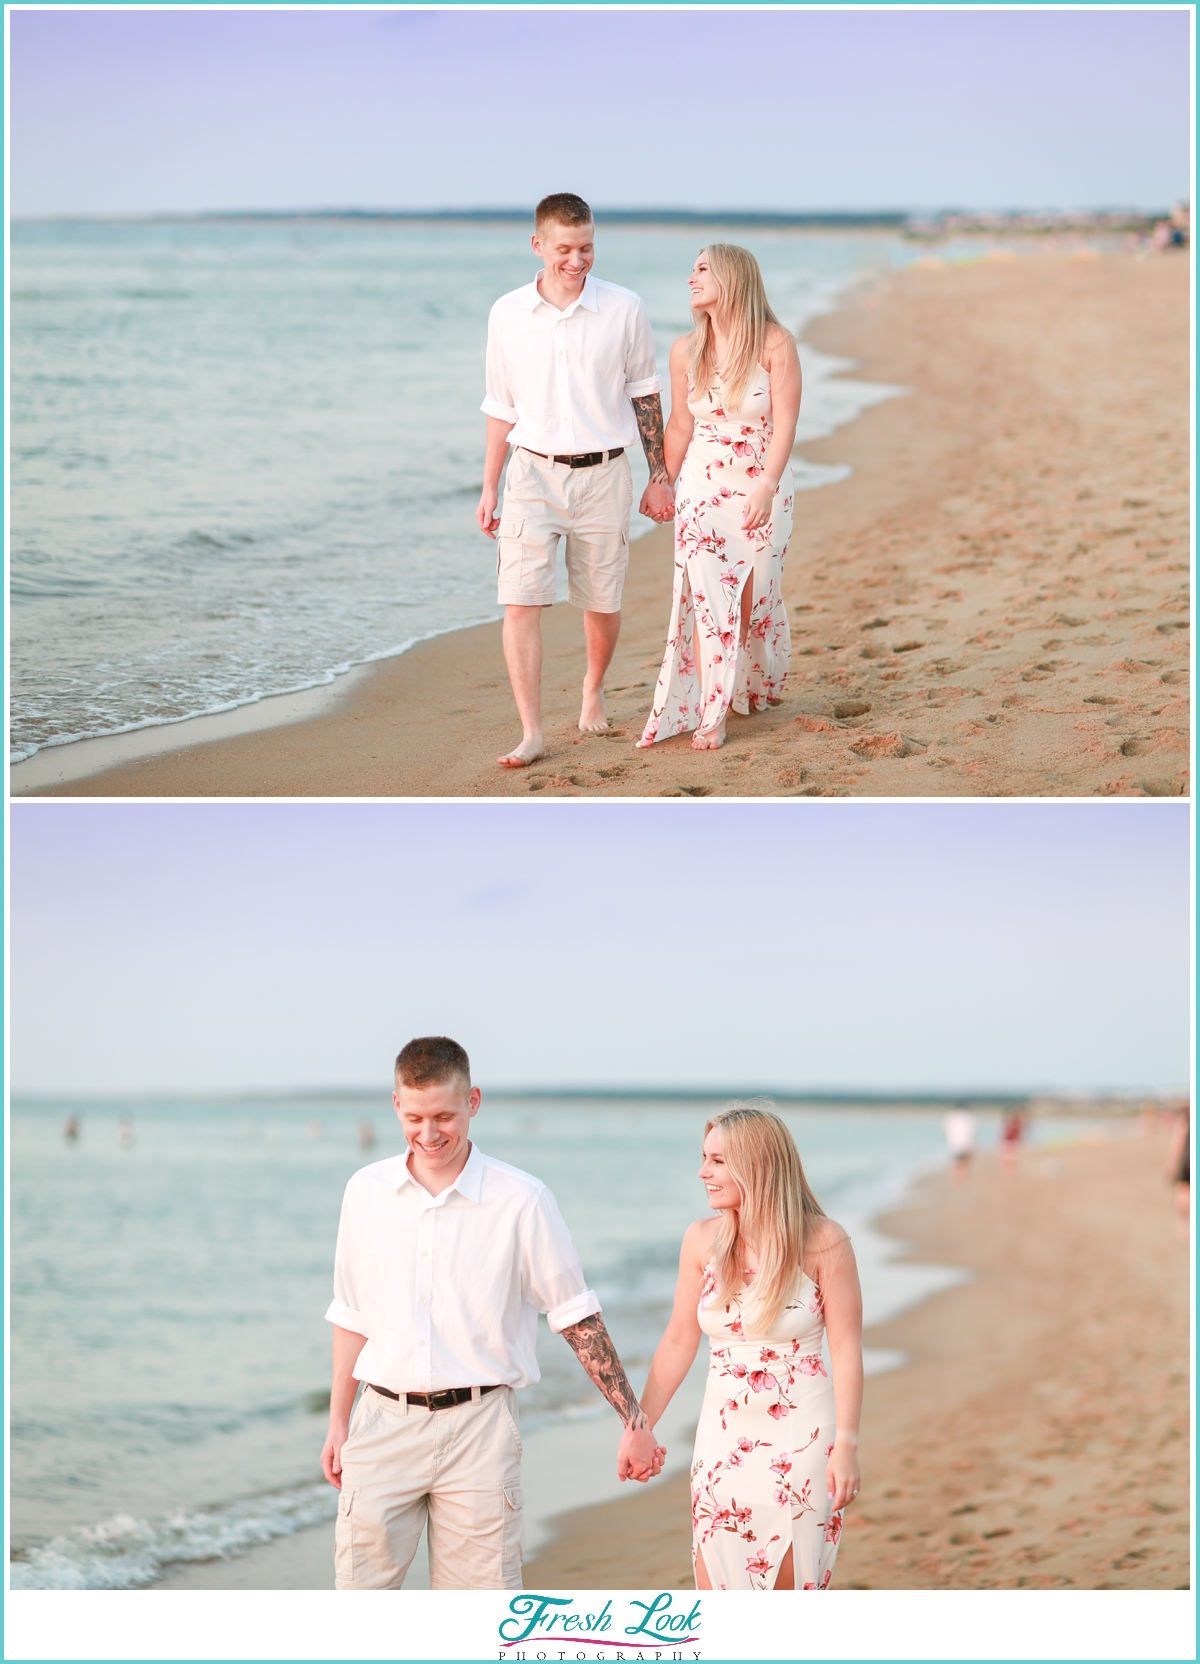 romantic walk on the beach